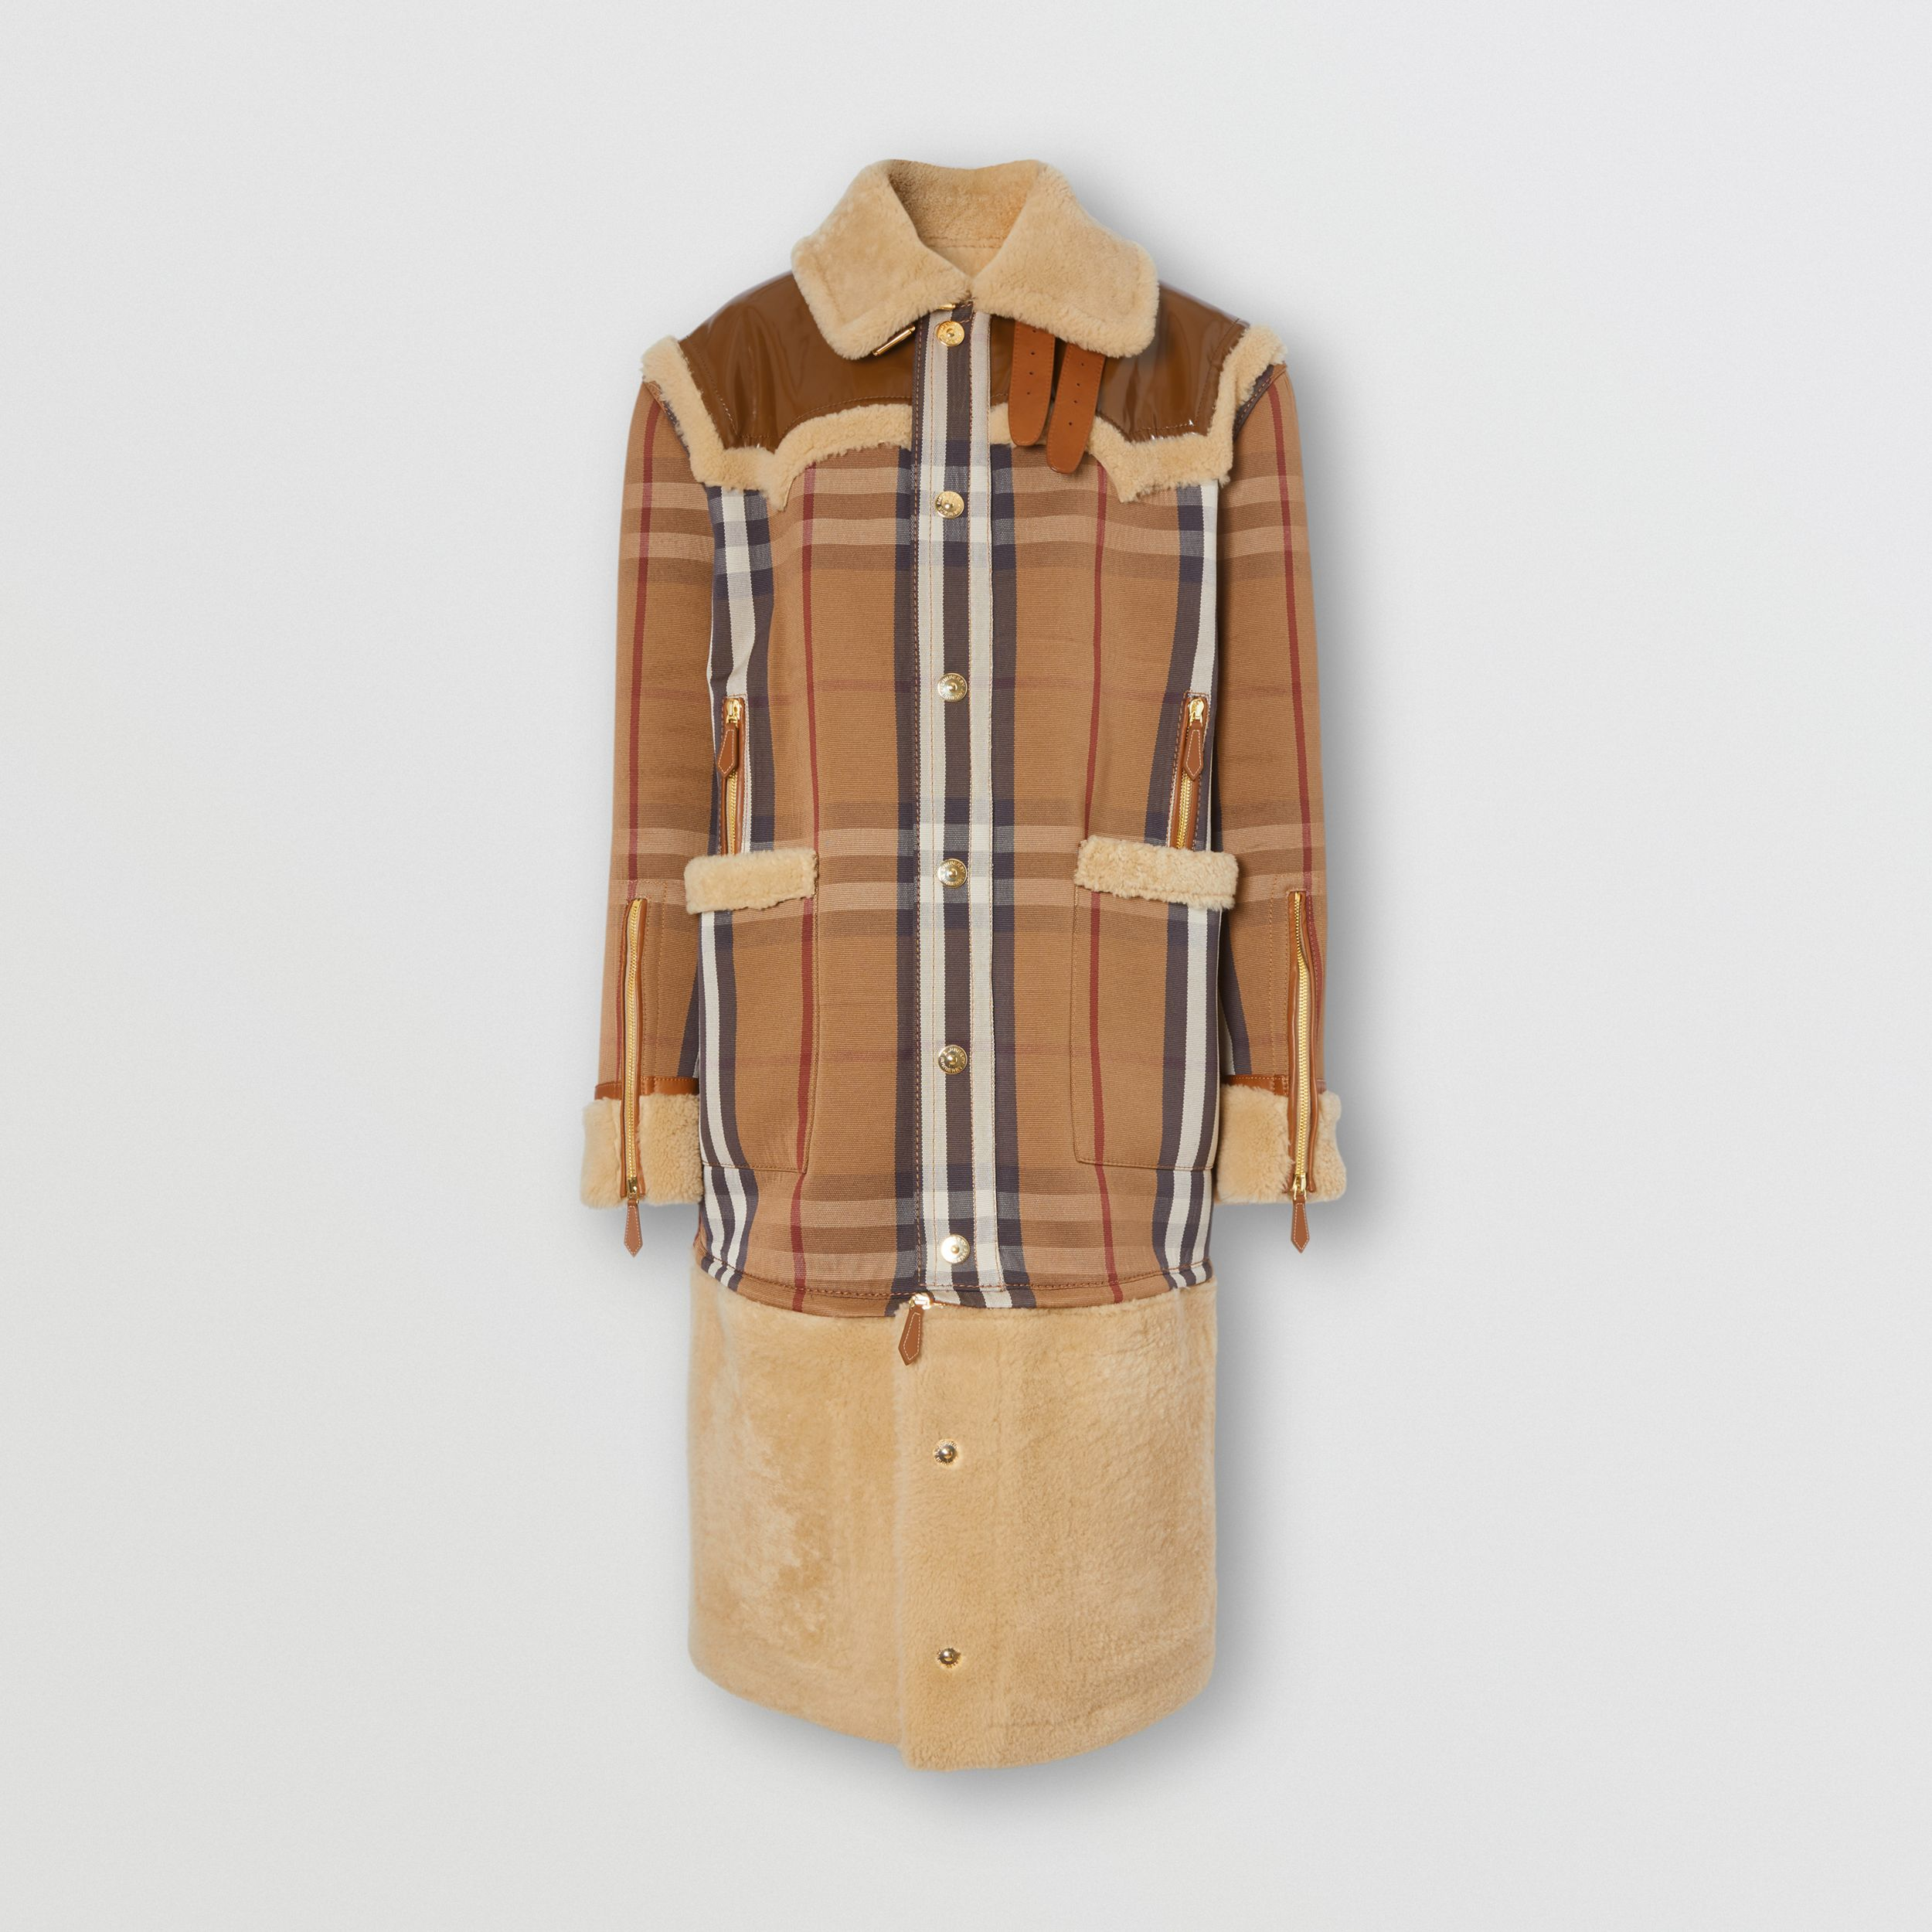 Manteau en shearling et coton technique House check (Bouleau Brun) | Burberry Canada - 4